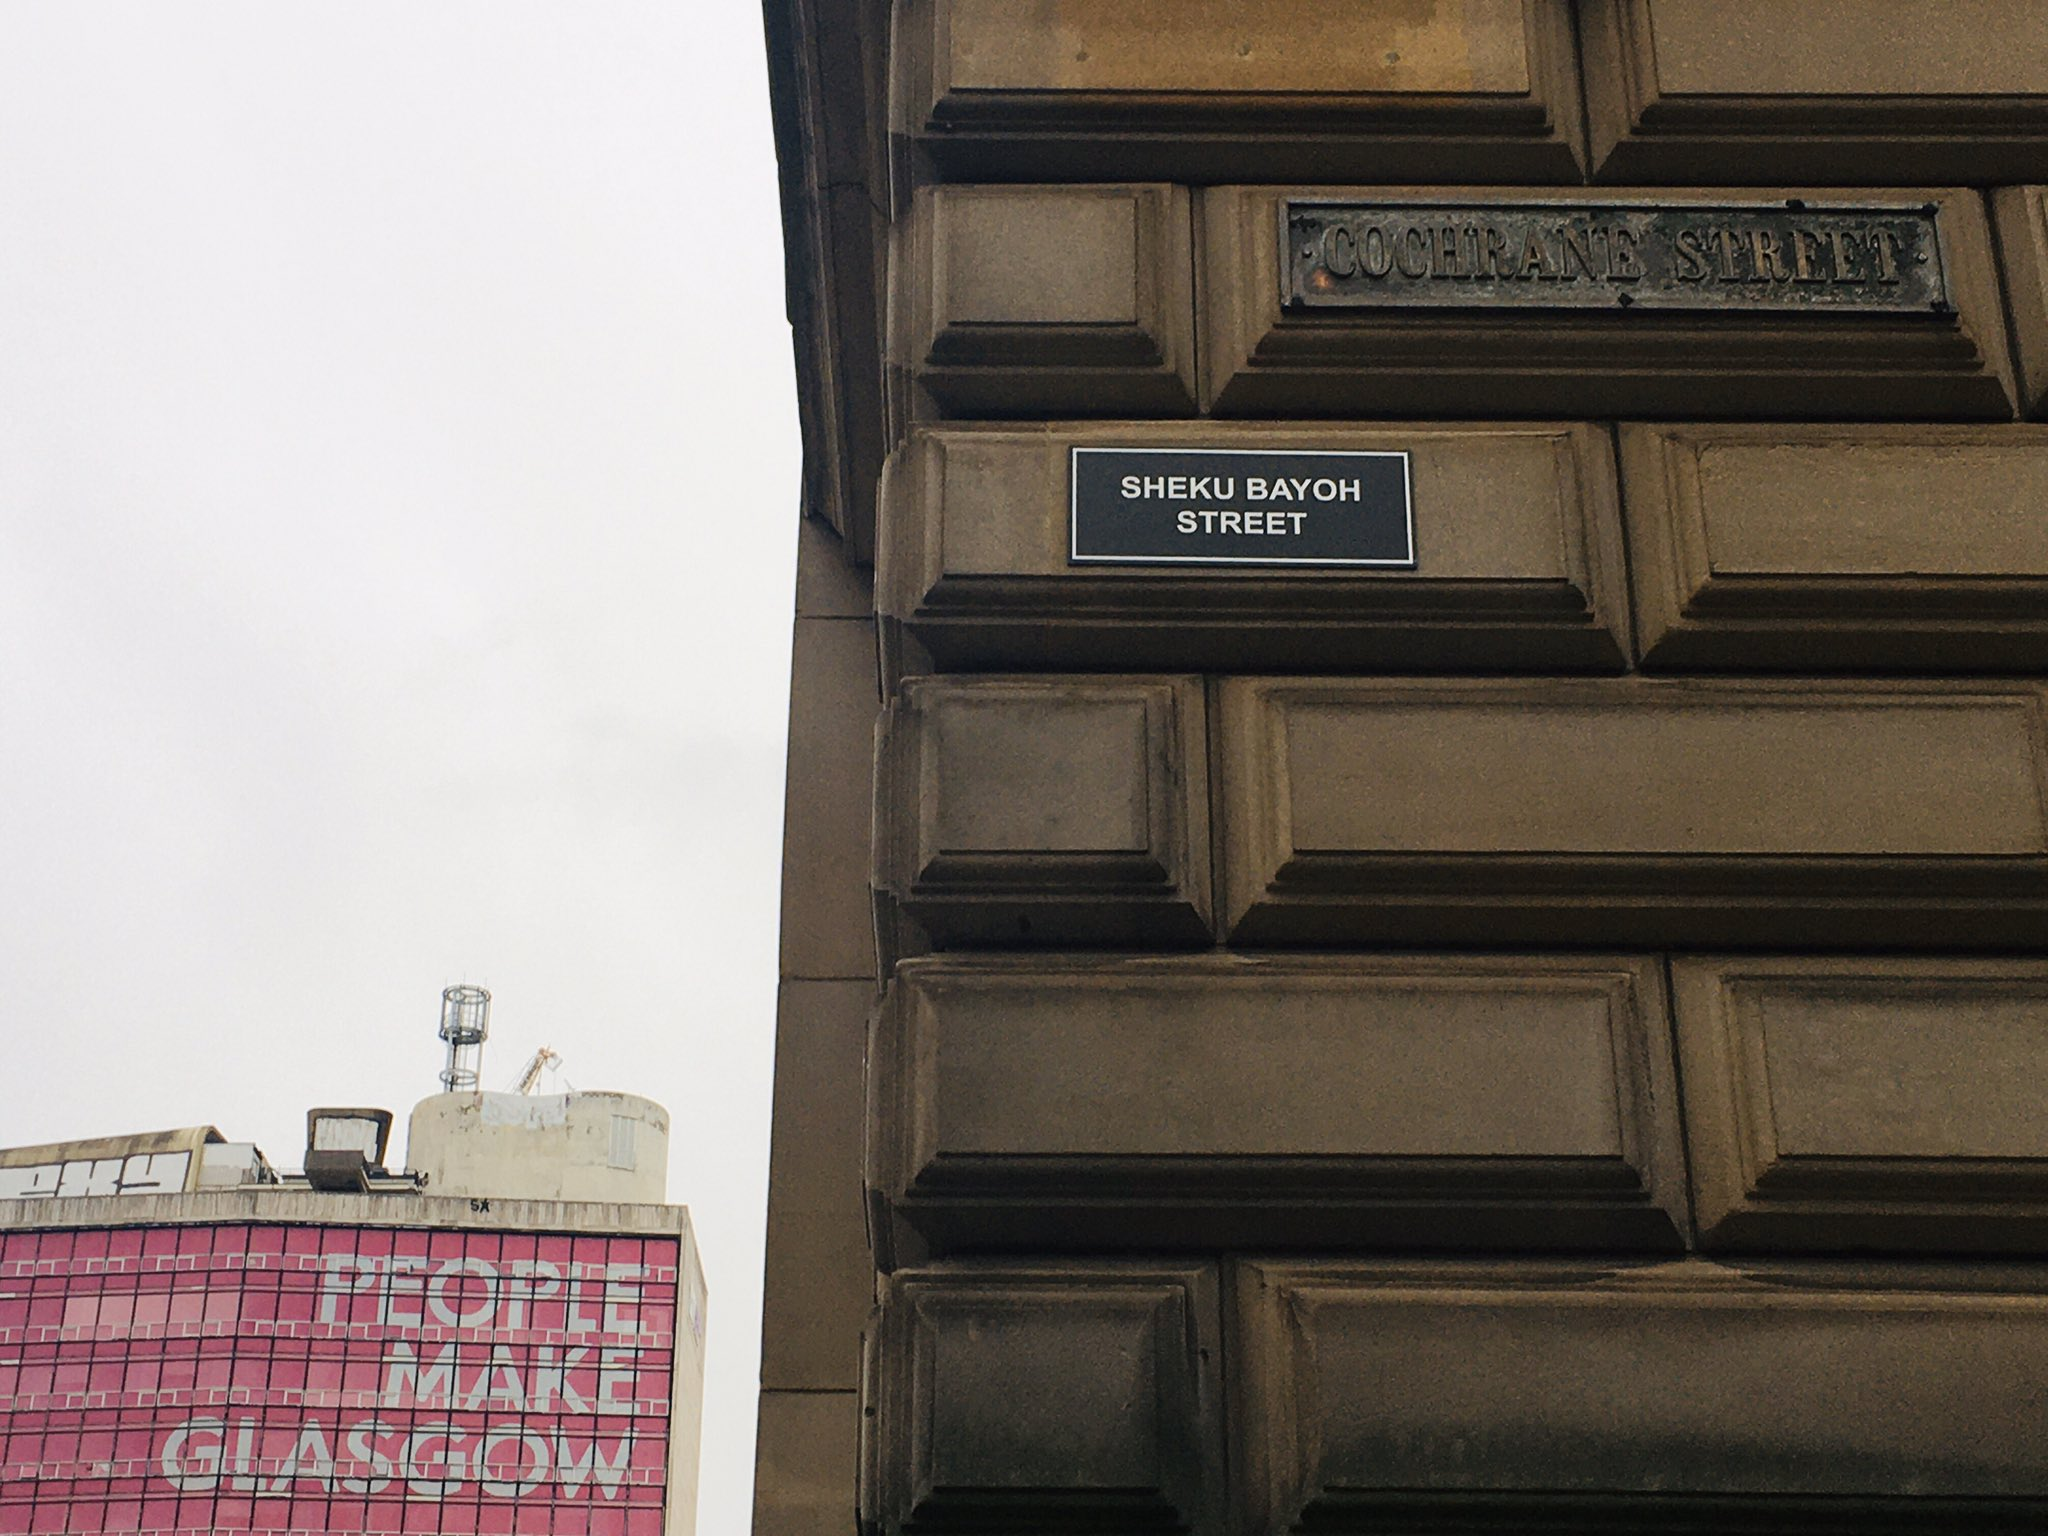 Mr Bayoh's name has been used on one of the plaques.